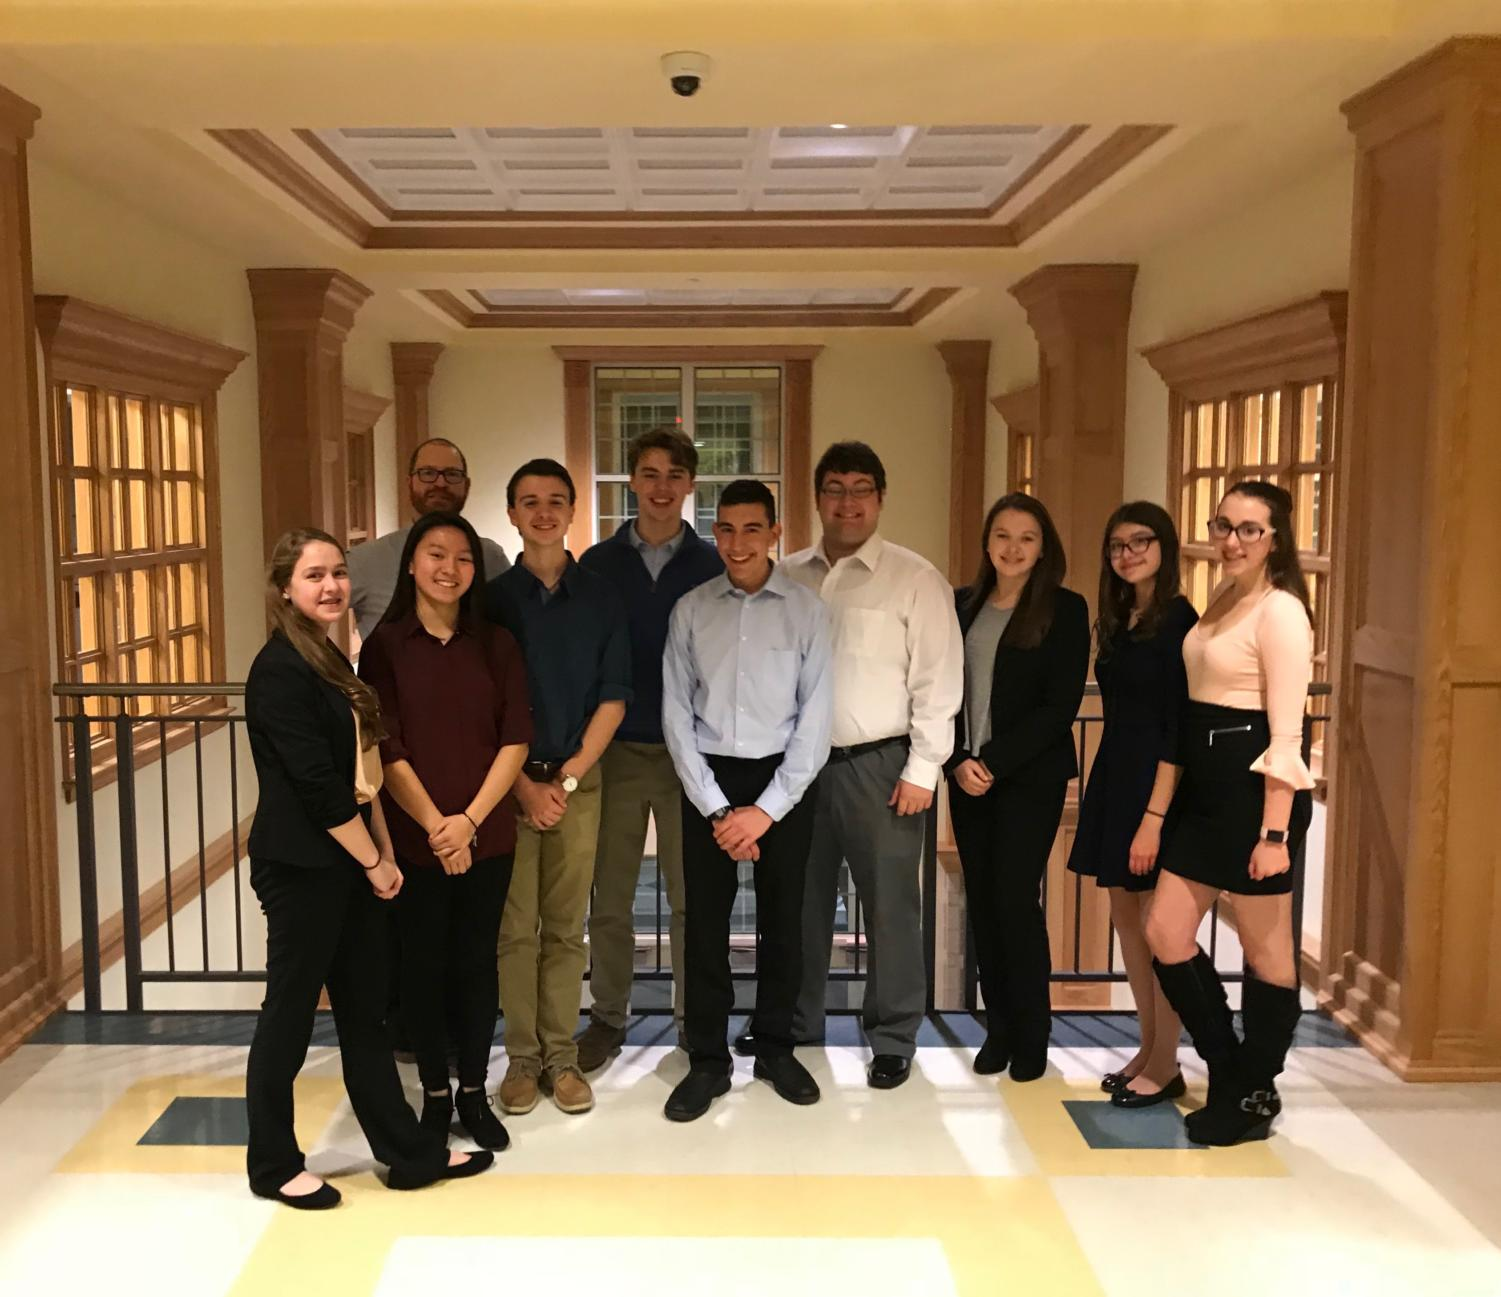 From left to right: Jillian Cabral, Benjamin Chase, Jillian Platt, Jacob Biello, Maxwell Cabana, Ryan Silverman, Jaden Cranshaw, Rebecca Donovan, Cassandra Pay, Maya Newhook, Abigail Montag (not pictured) and Santiago Abril (not pictured).